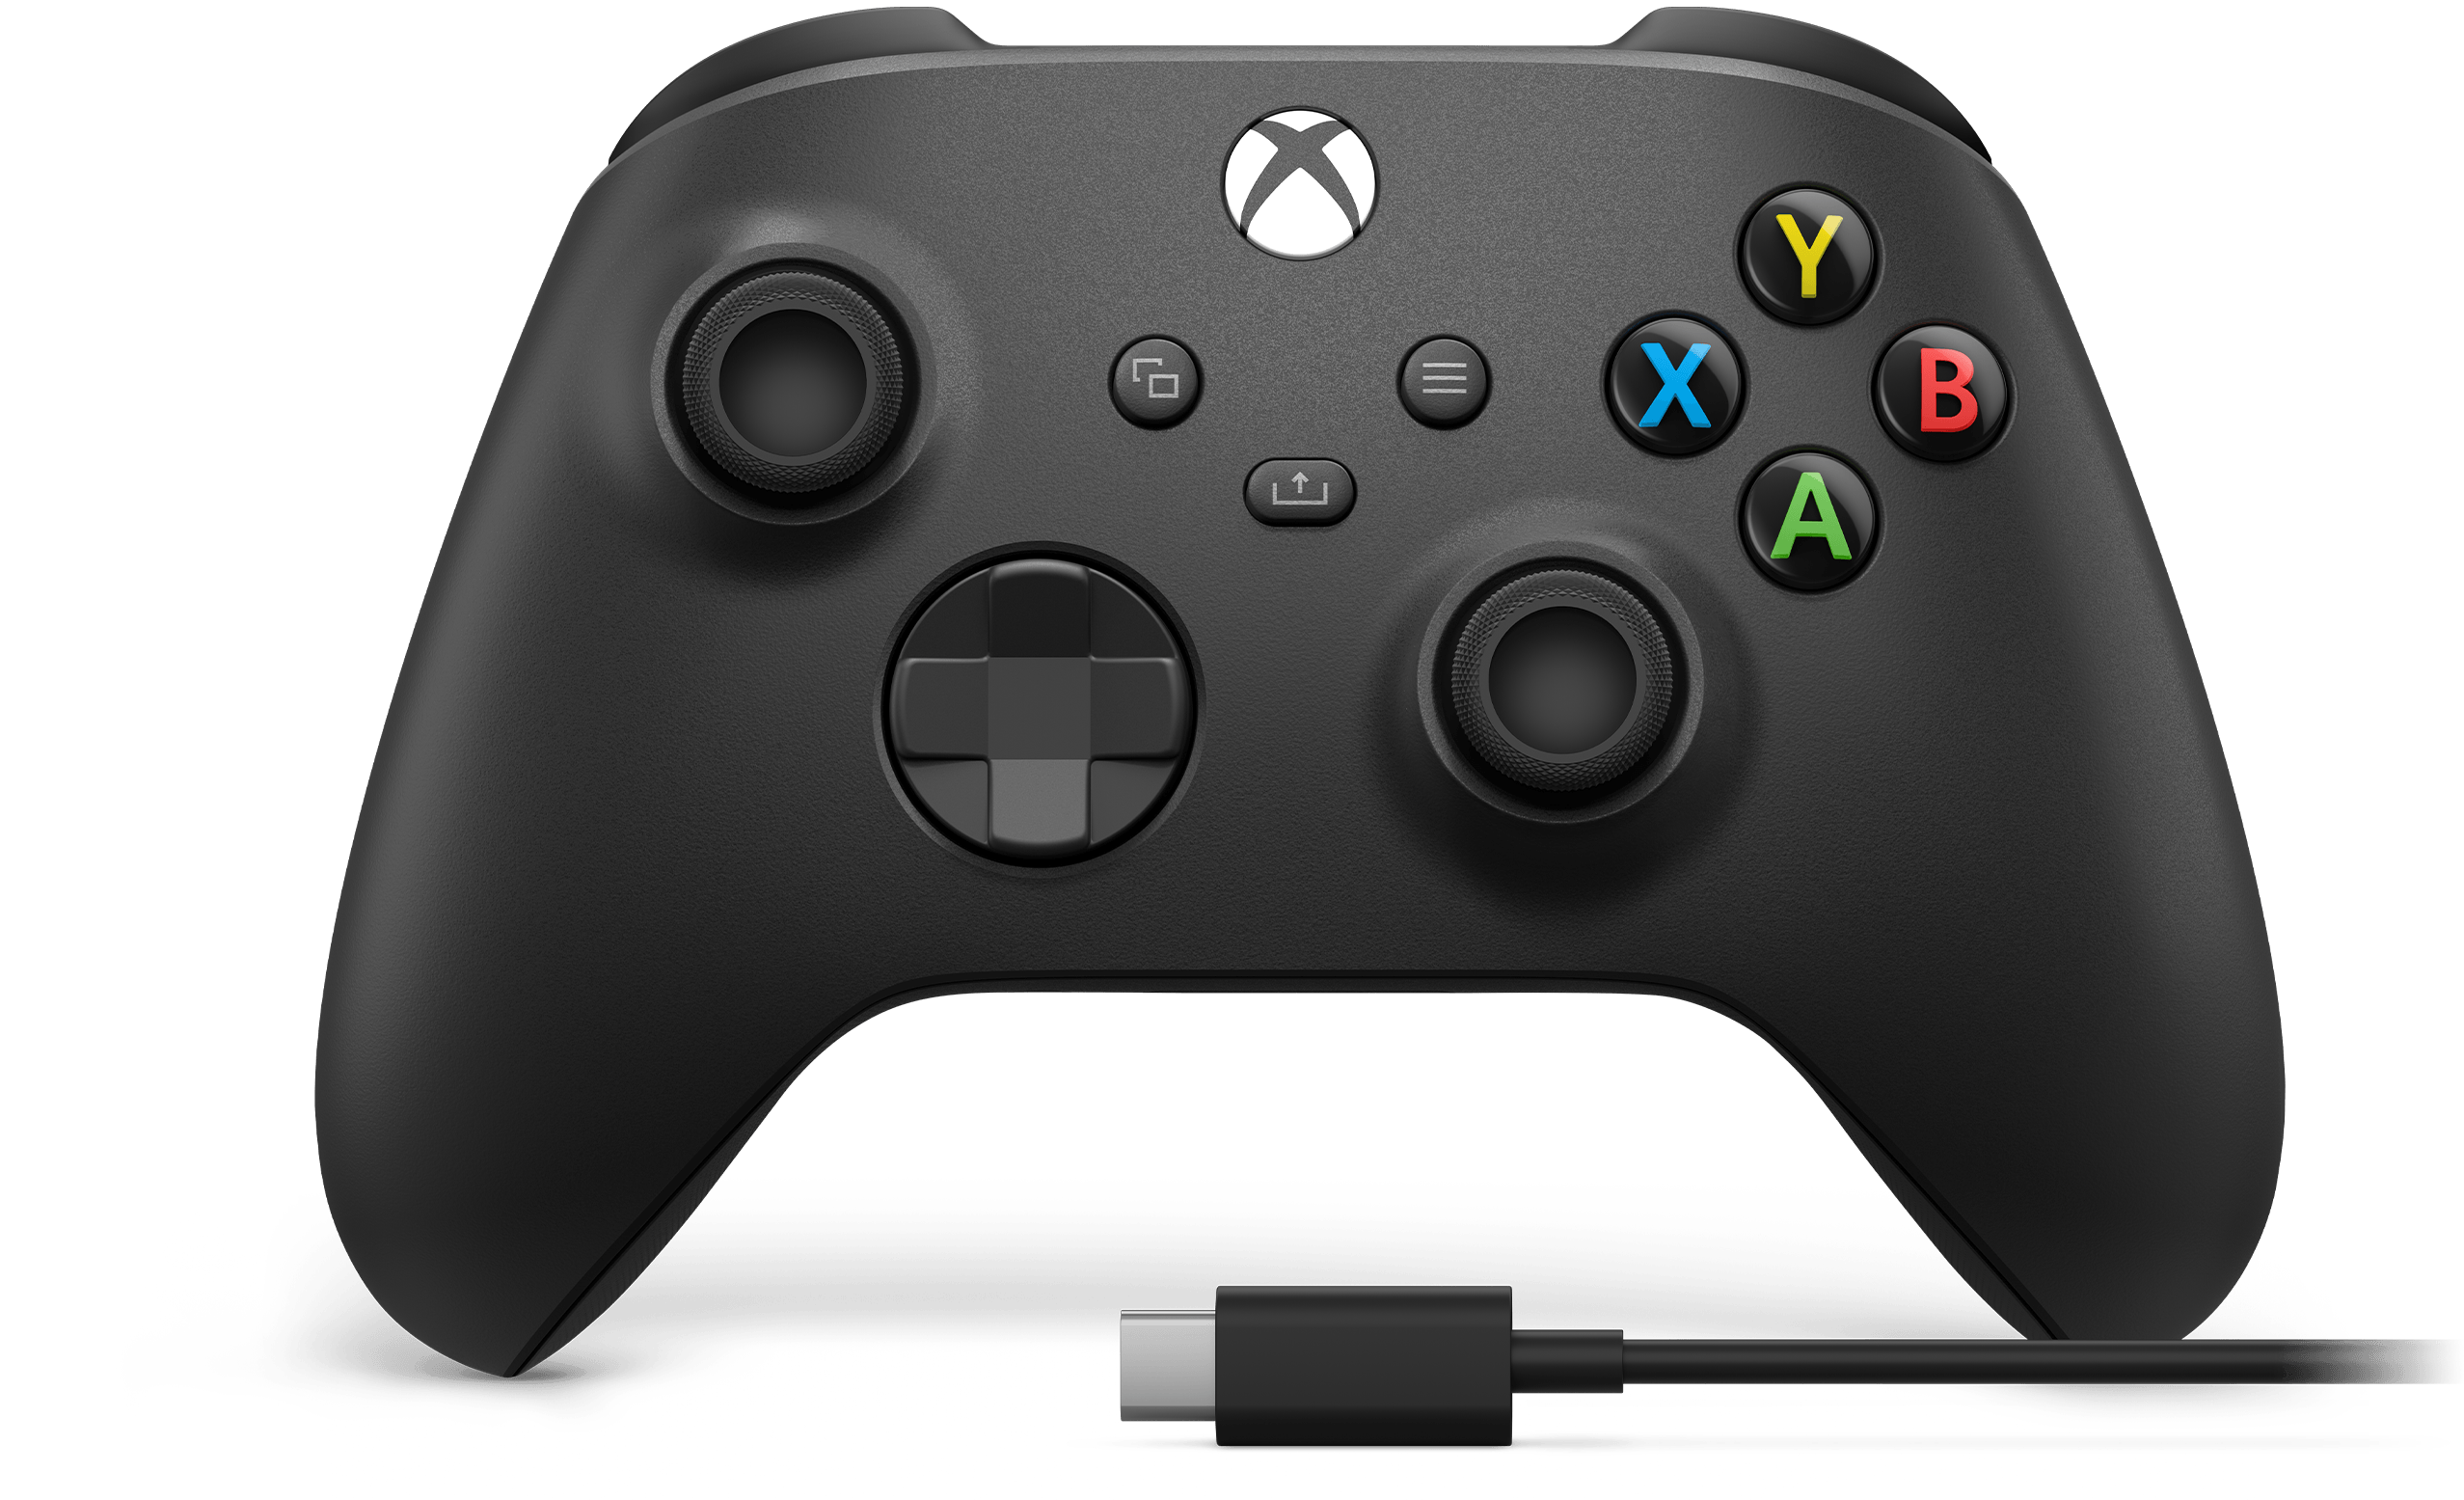 Xbox Wireless Controller + USB-C® Cable Experience the modernised Xbox Wireless Controller, designed for enhanced comfort during gameplay for supported consoles, PCs, and mobile phones or tablets. Play wirelessly or use the included 2.7 m (9 ft) USB-C cable for a wired gaming experience*